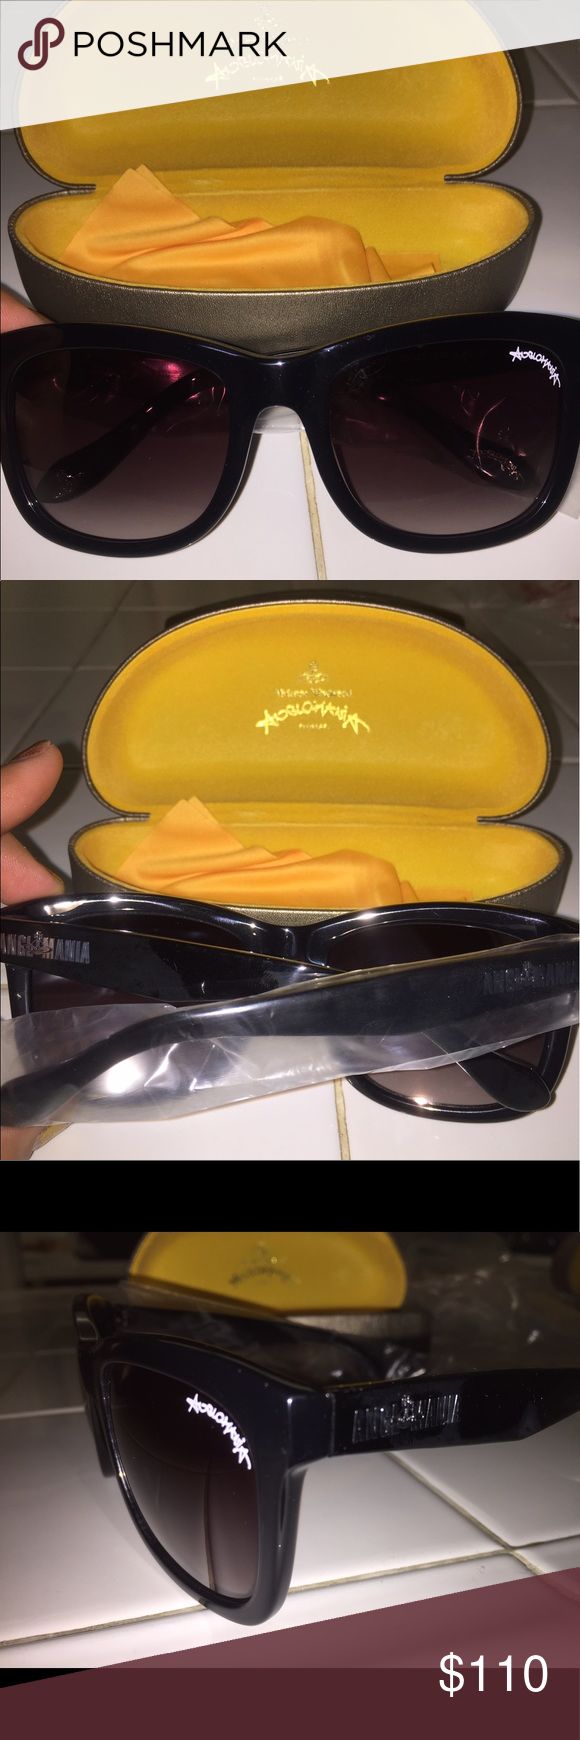 ad7b5b2cb5a3 Authentic Vivienne Westwood sunglasses Brand new Vivienne Westwood  Anglomania black sunglasses Vivienne Westwood Accessories Glasses